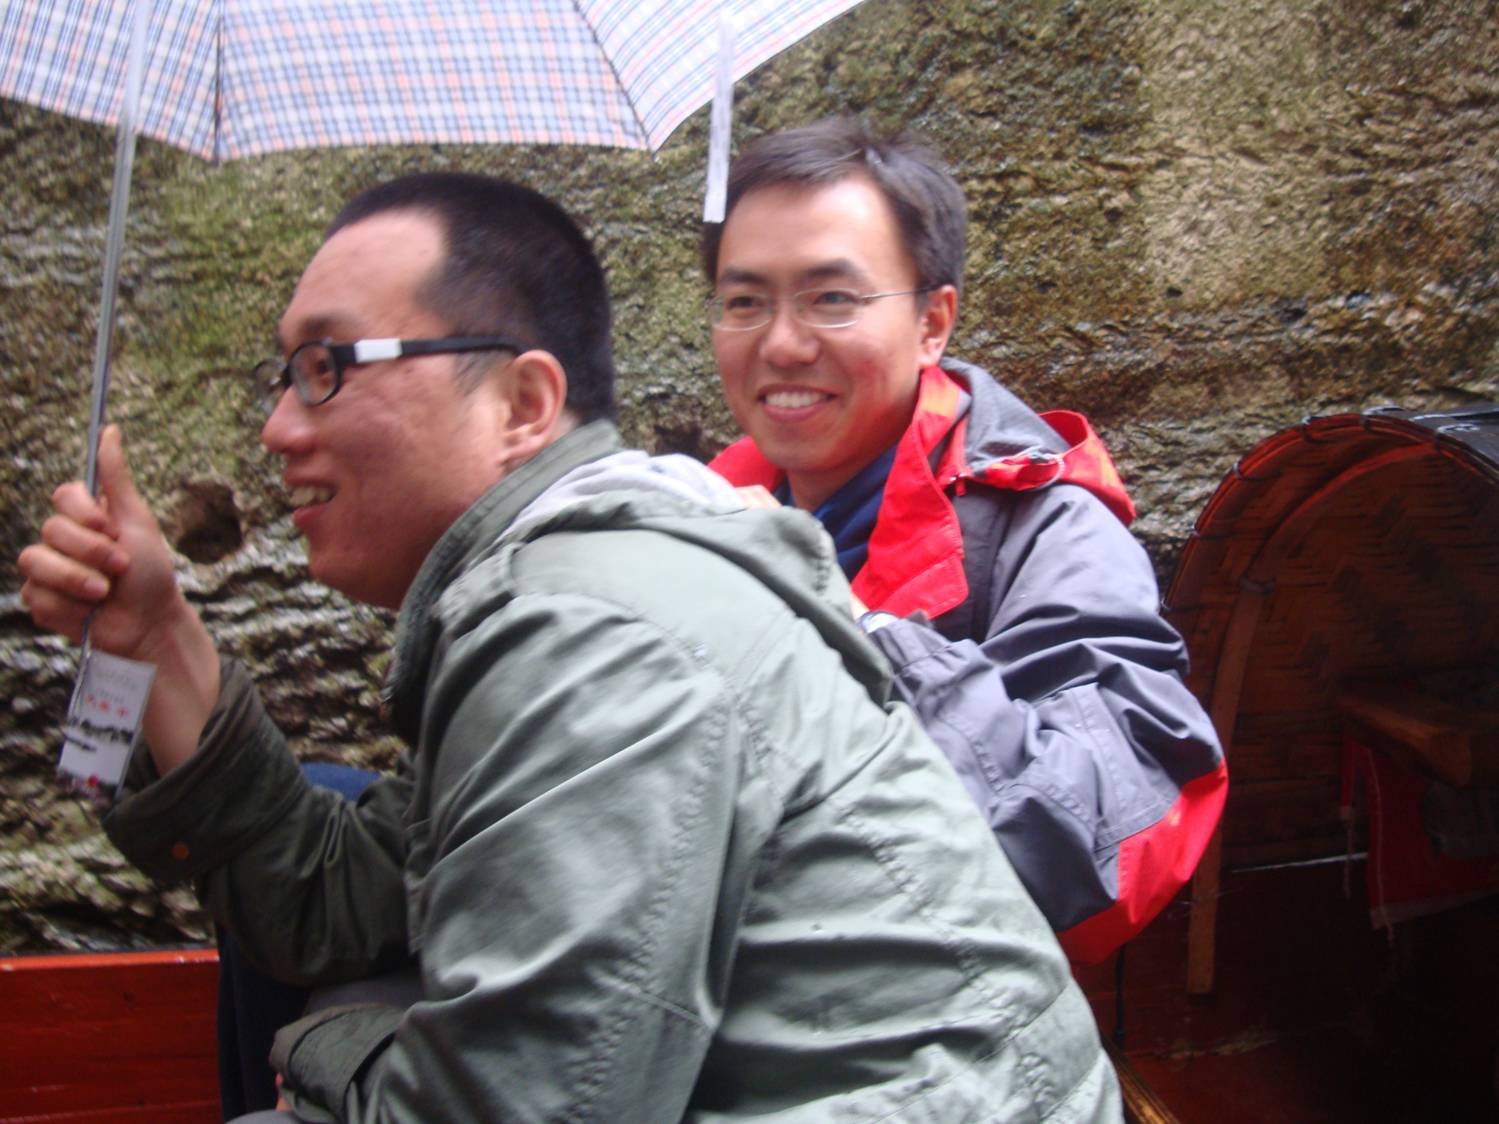 Picture:  It was a bit rainy, but not cold.  So we all enjoyed our boat ride on Donghu (East Lake).  Shaoxing, China